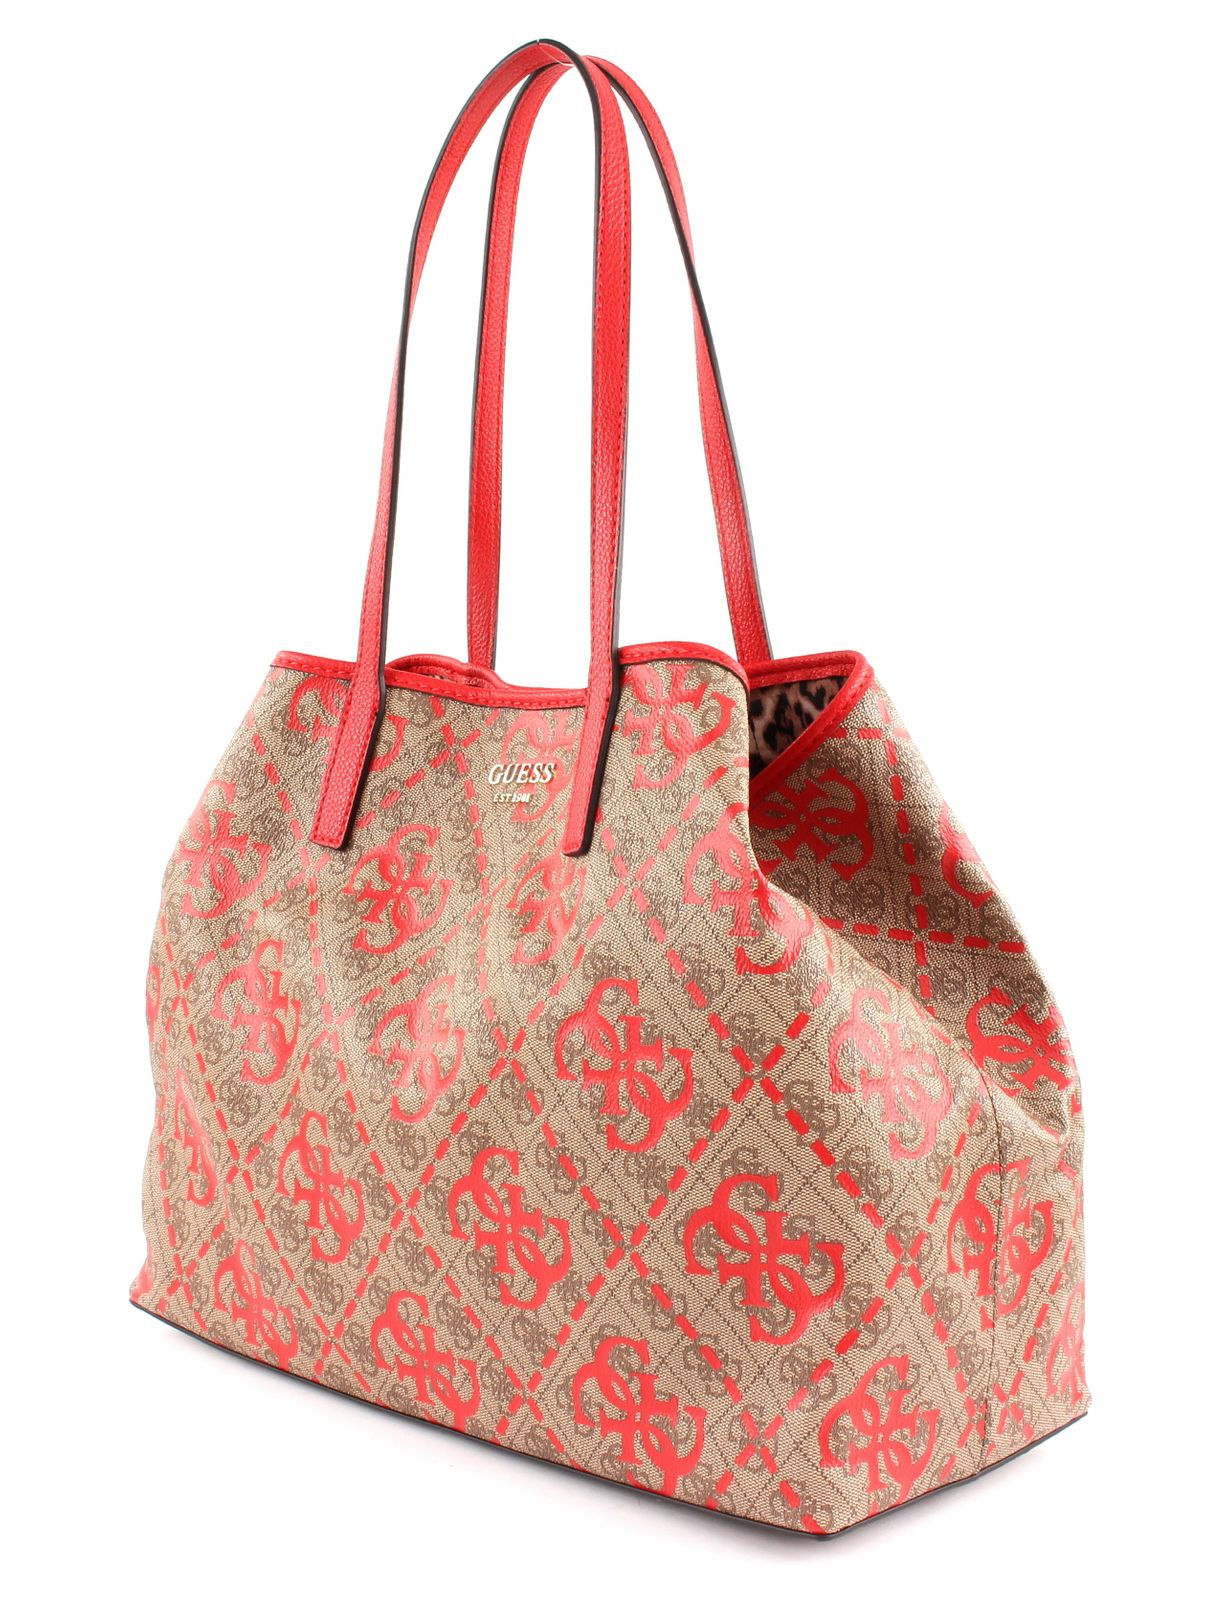 GUESS VIKKY Large Tote Front Print White Multi, Damentasche